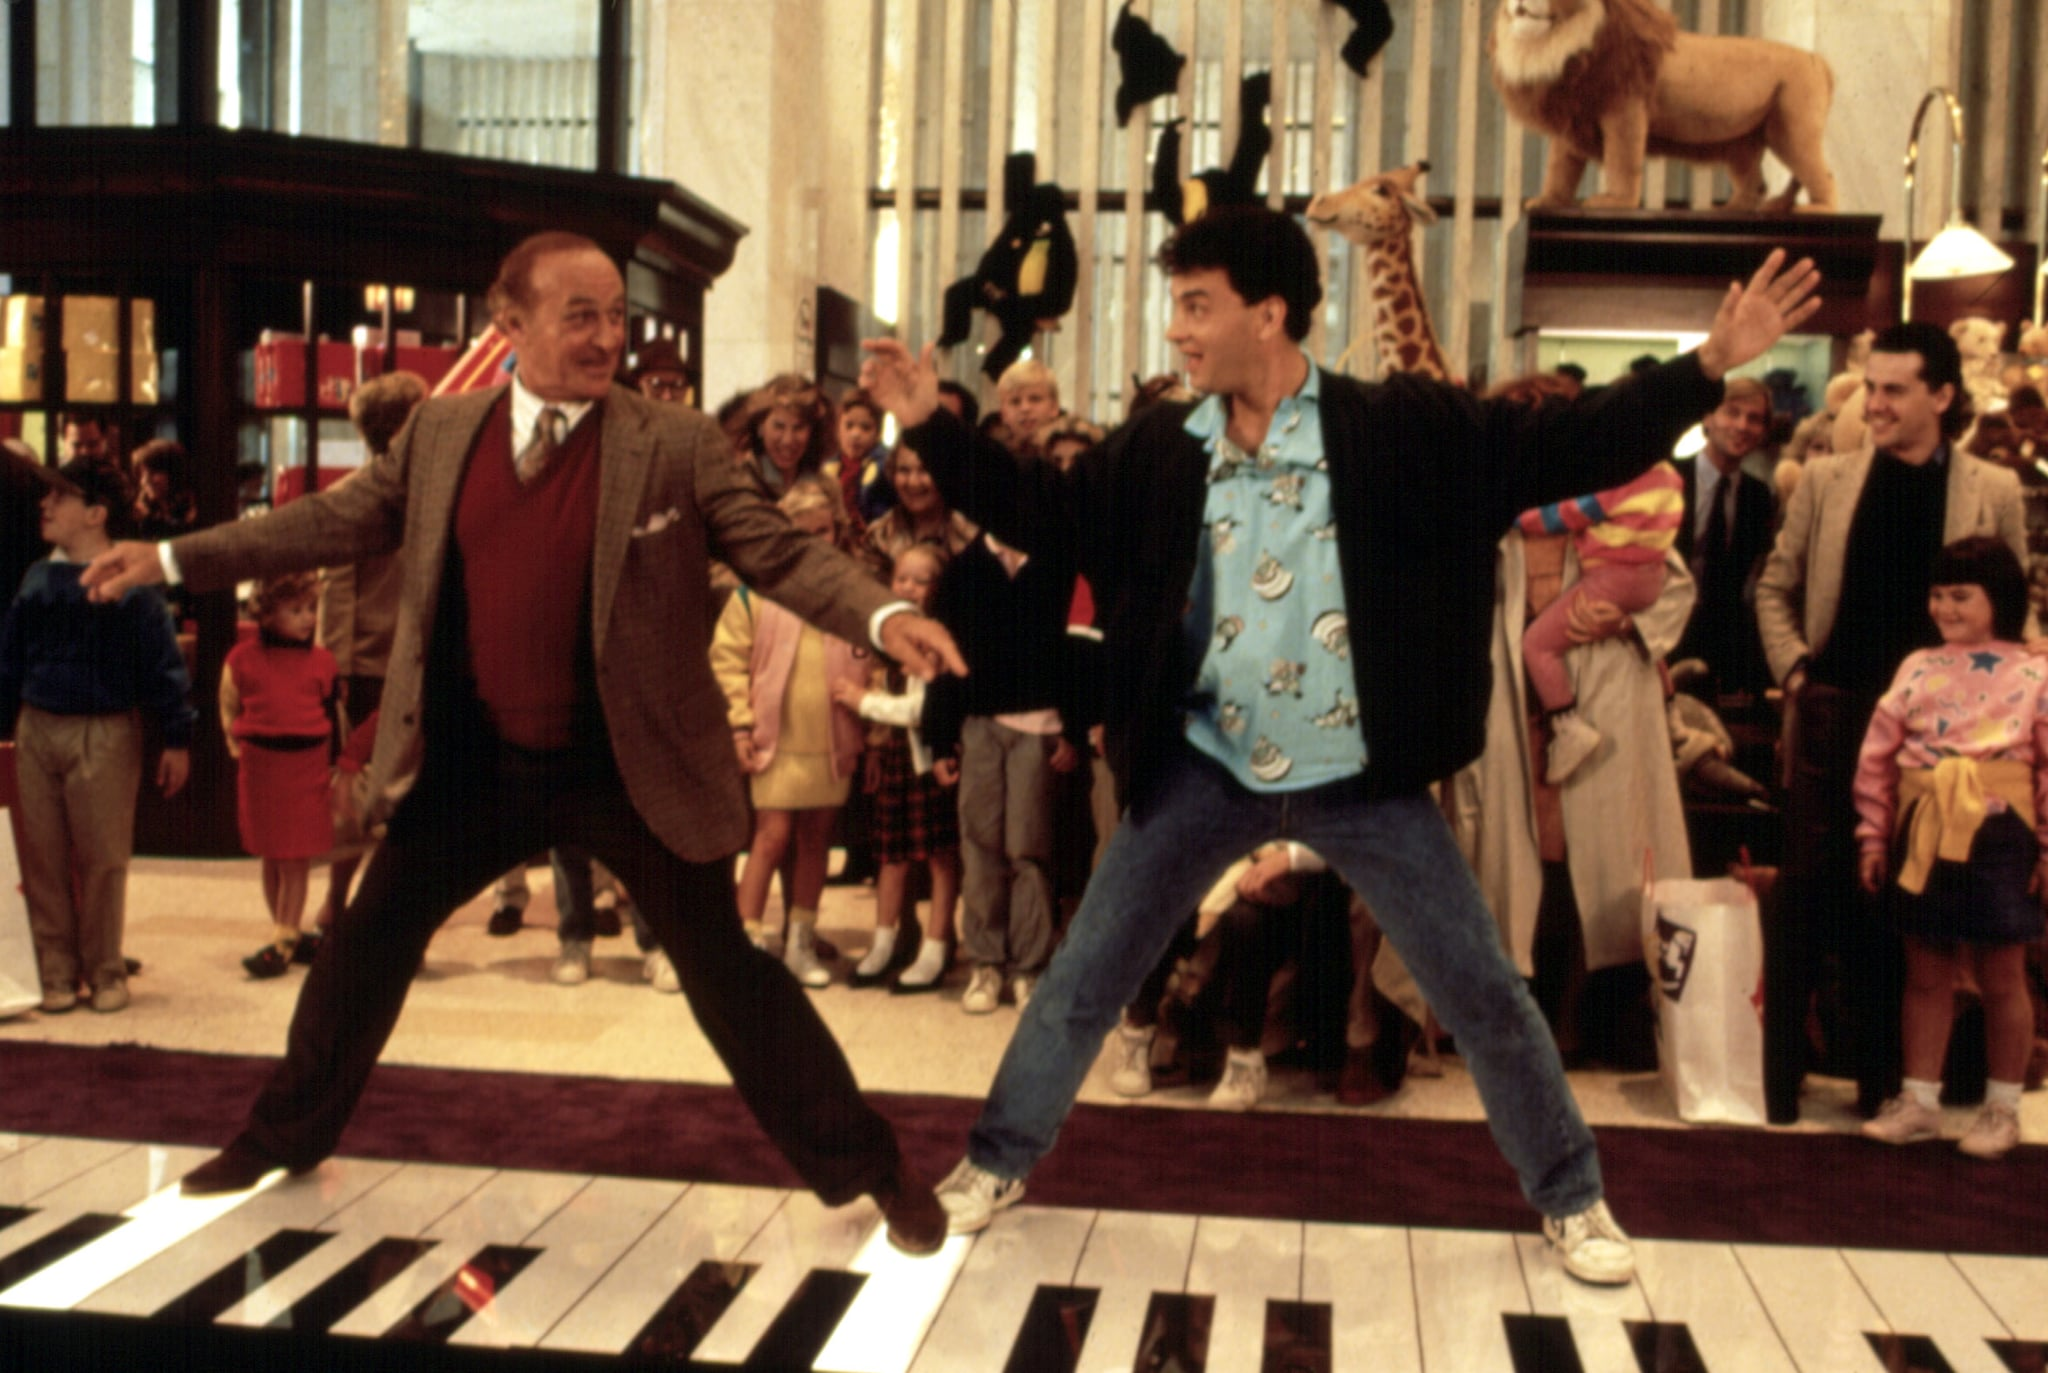 BIG, ROBERT LOGGIA, TOM HANKS, 1988. TM AND COPYRIGHT (C) 20TH CENTURY FOX FILM CORP. ALL RIGHTS RESERVED. COURTESY: